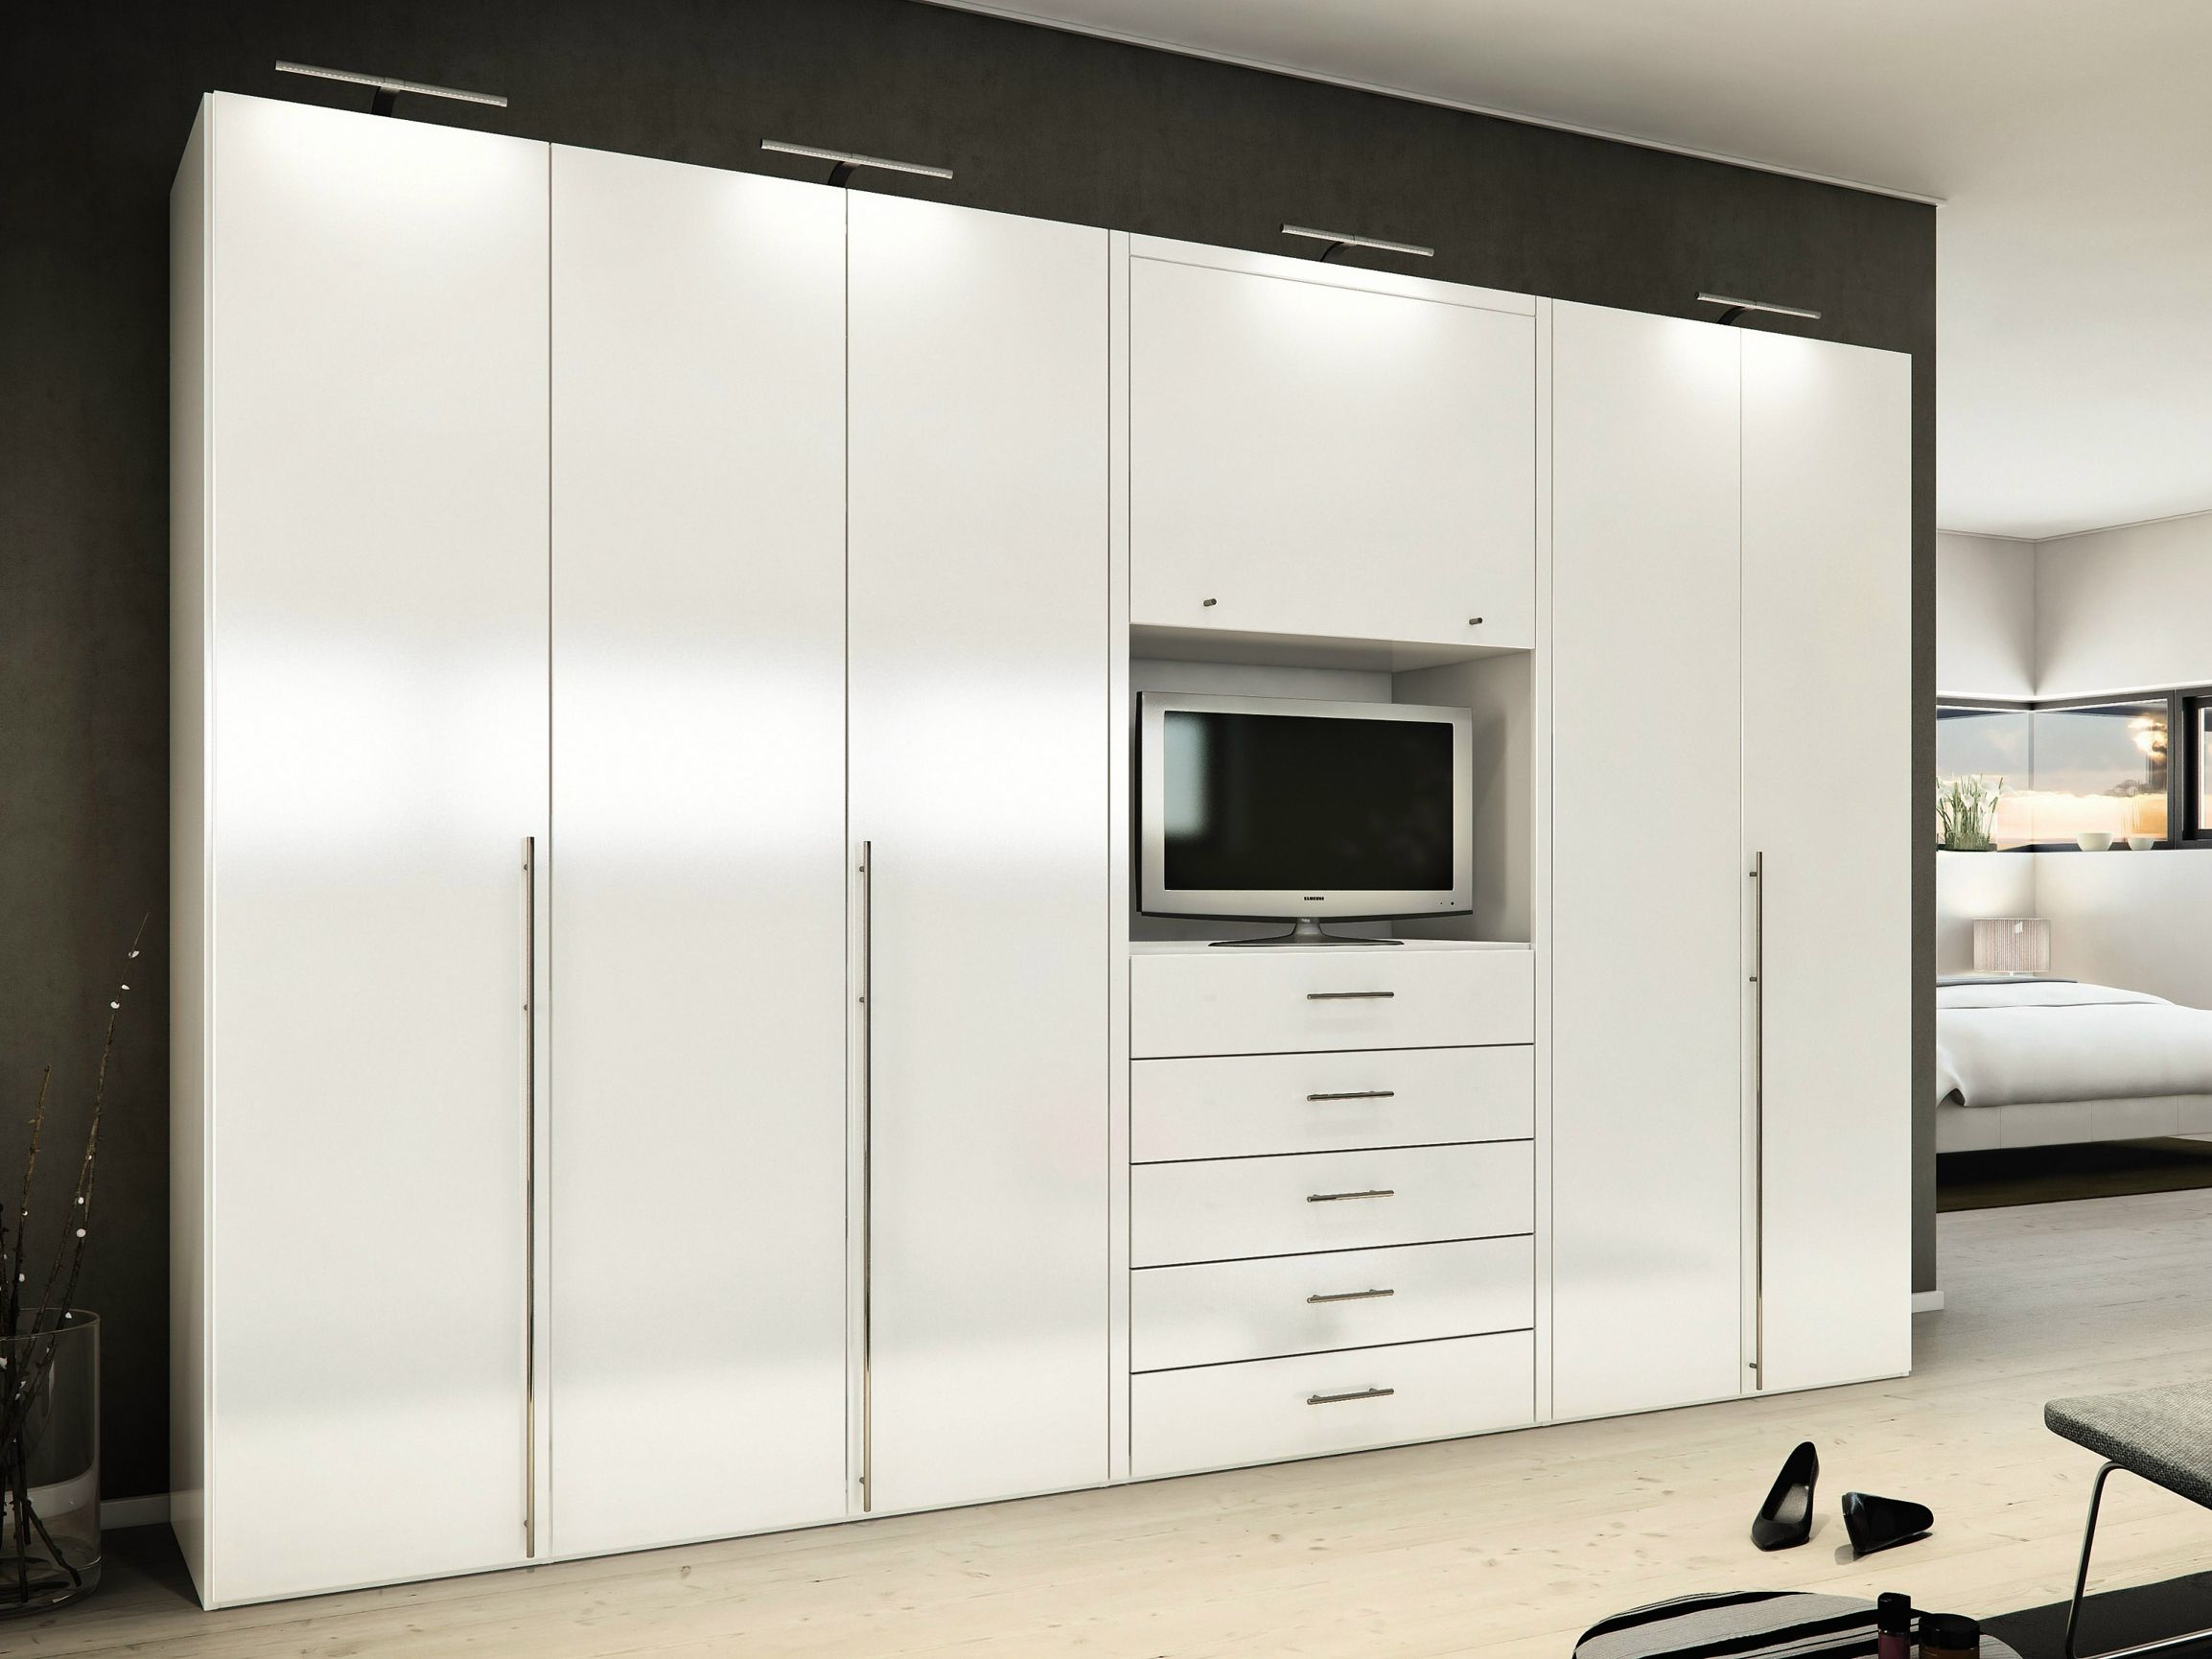 Wardrobe closet with tv space google search bedroom for Bedroom built in wardrobe designs